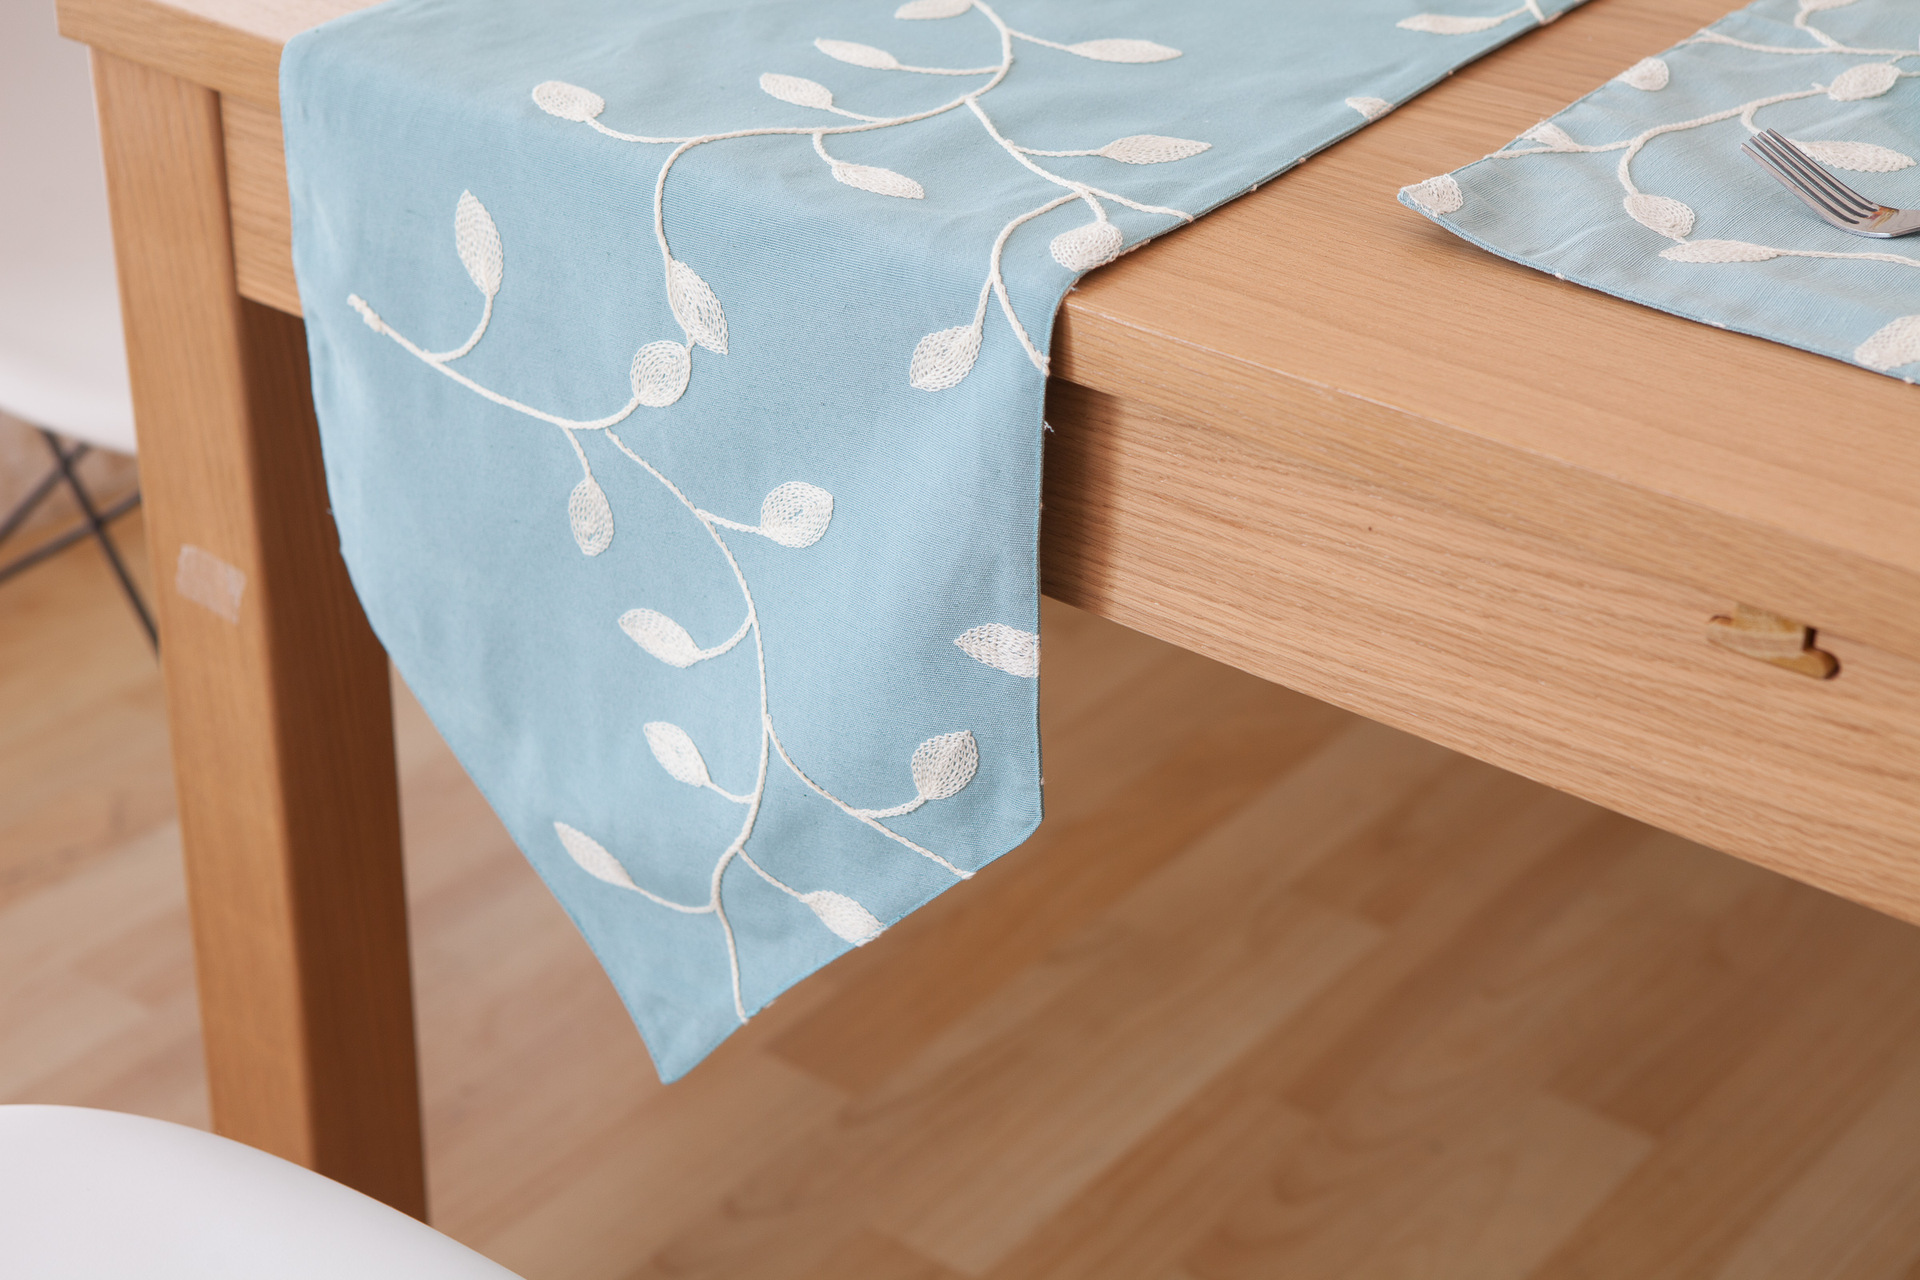 Decorous Embroidered Tablecloth for Must-Have Home Accessories